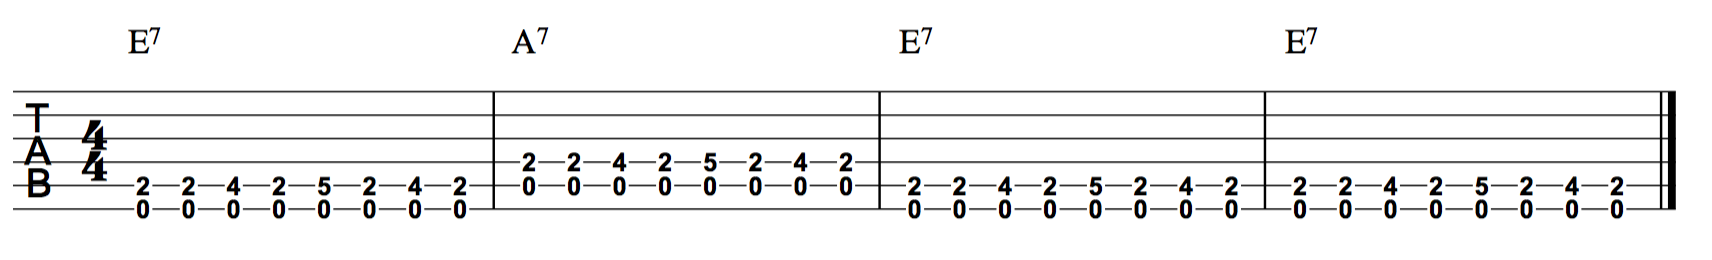 Guitar guitar chords a7 : File:E7 A7 E7 E7 blues chord progression guitar.png - Wikimedia ...